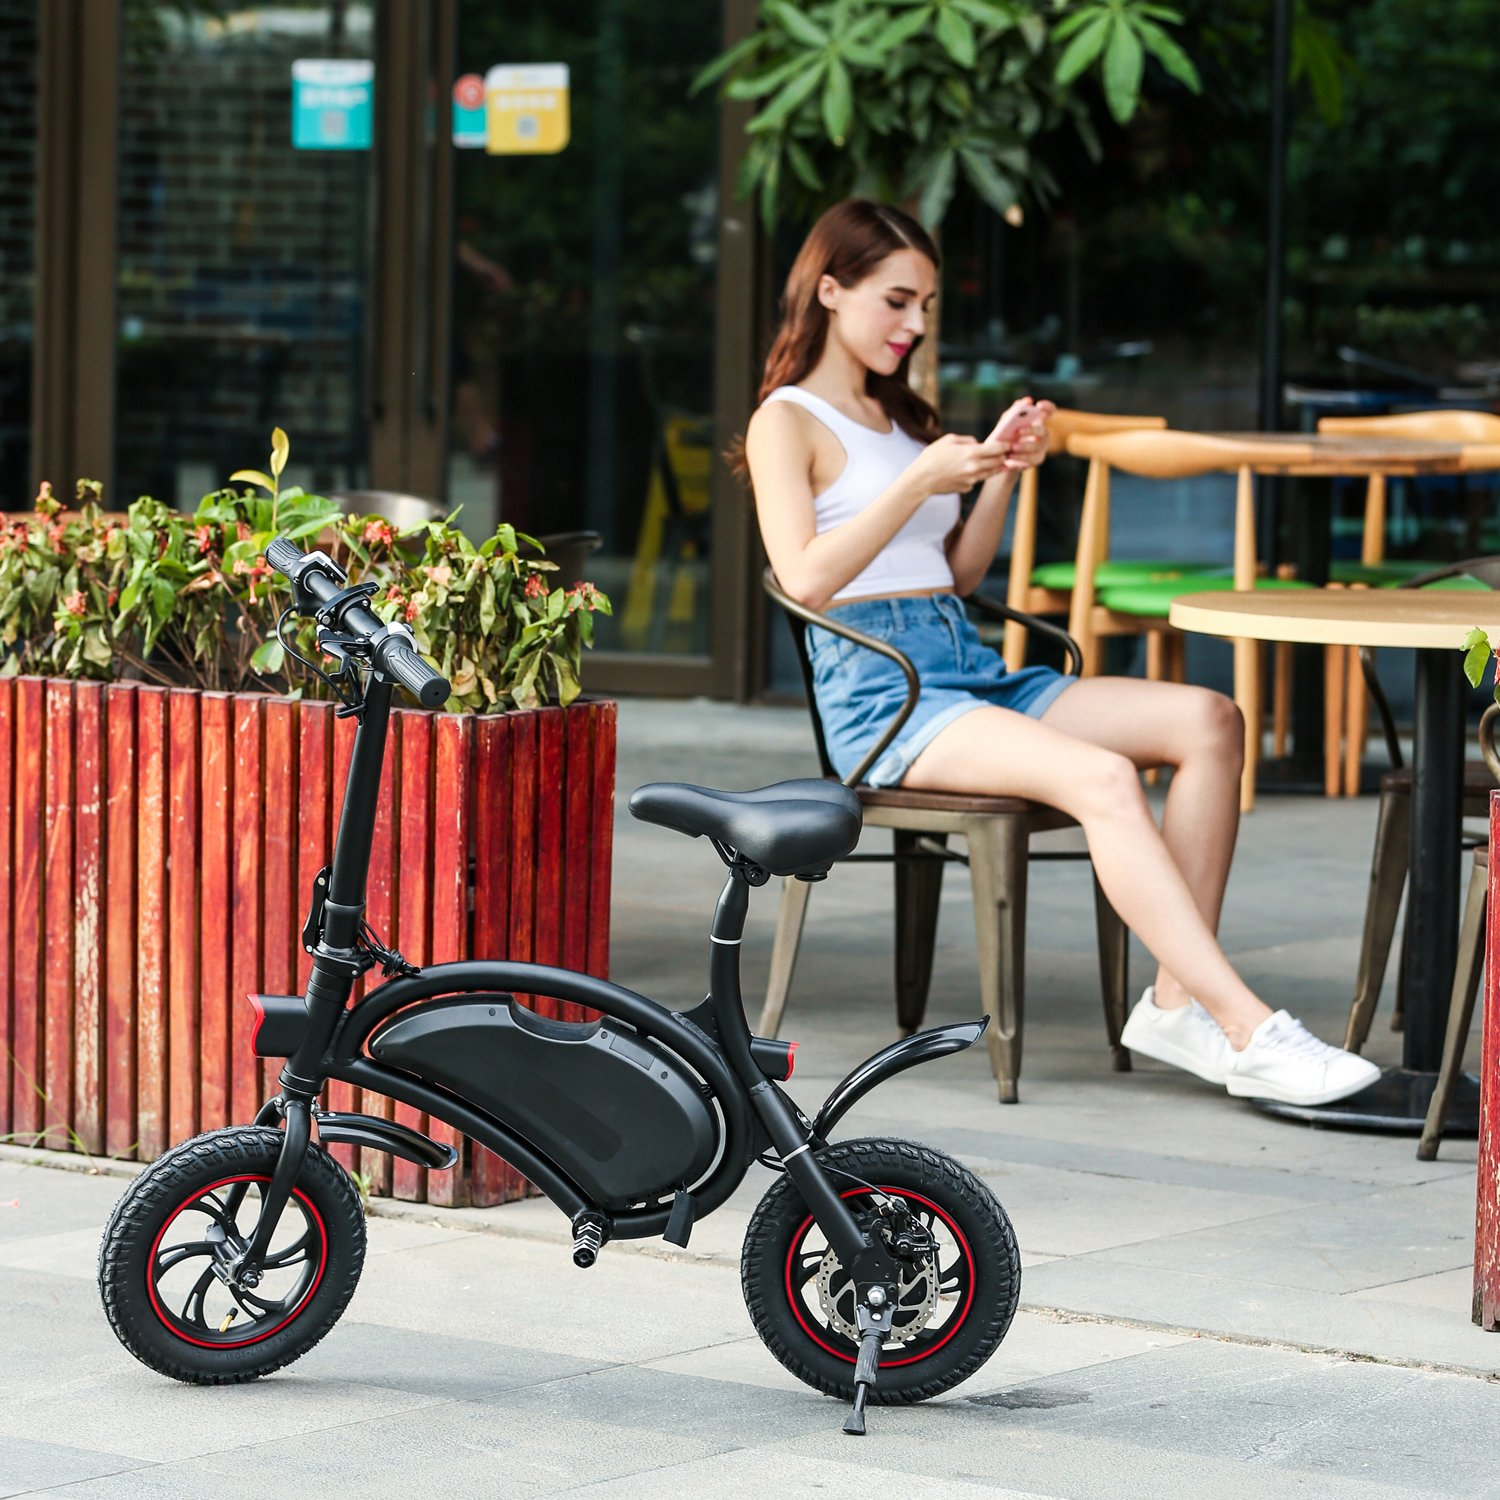 Shaofu 350W Cheapest Electric Bike